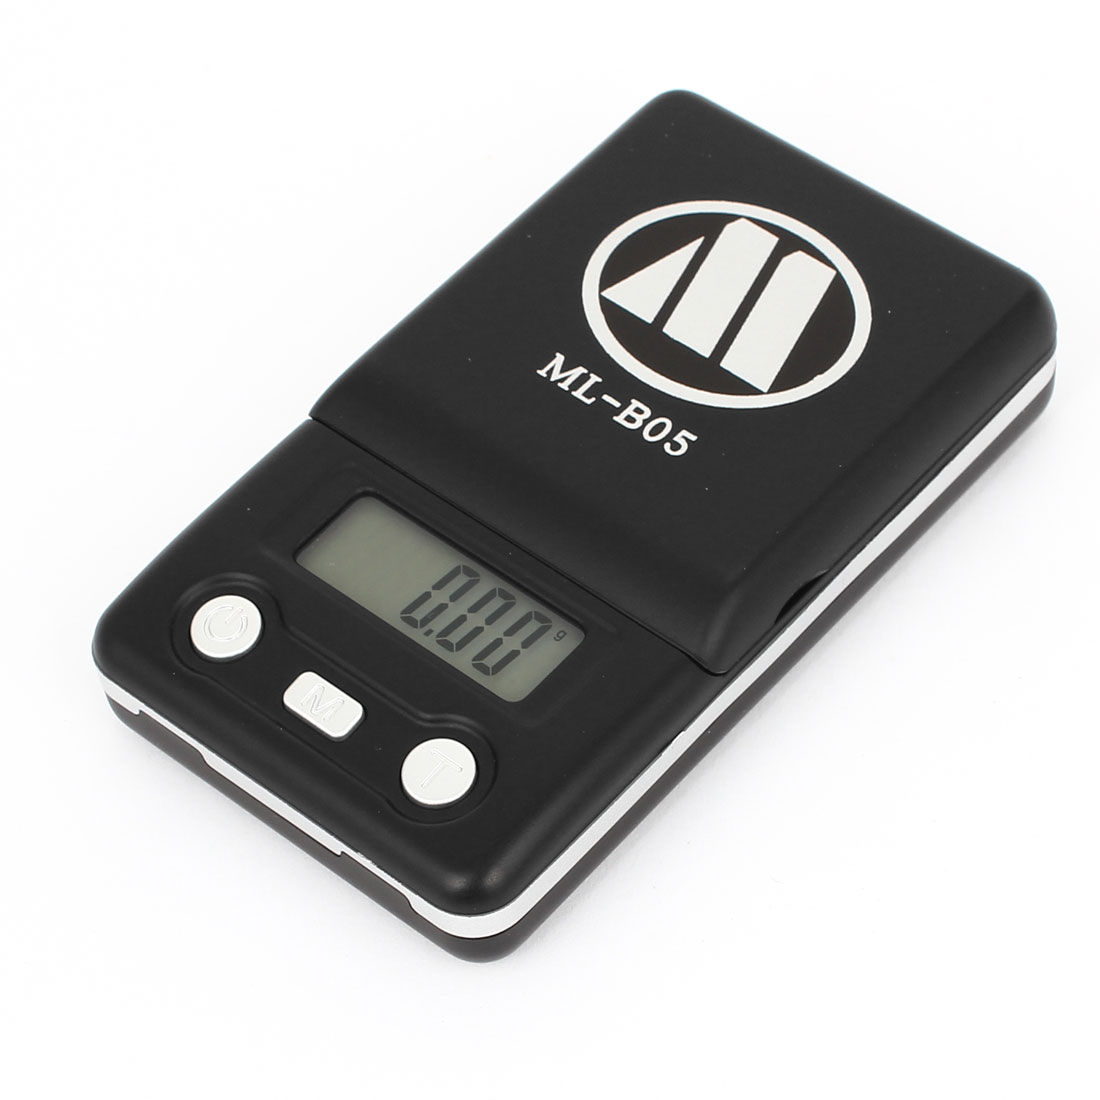 0.1g 500g Jewelry Gold Gram Weight Balance Mini Digital Pocket Scale